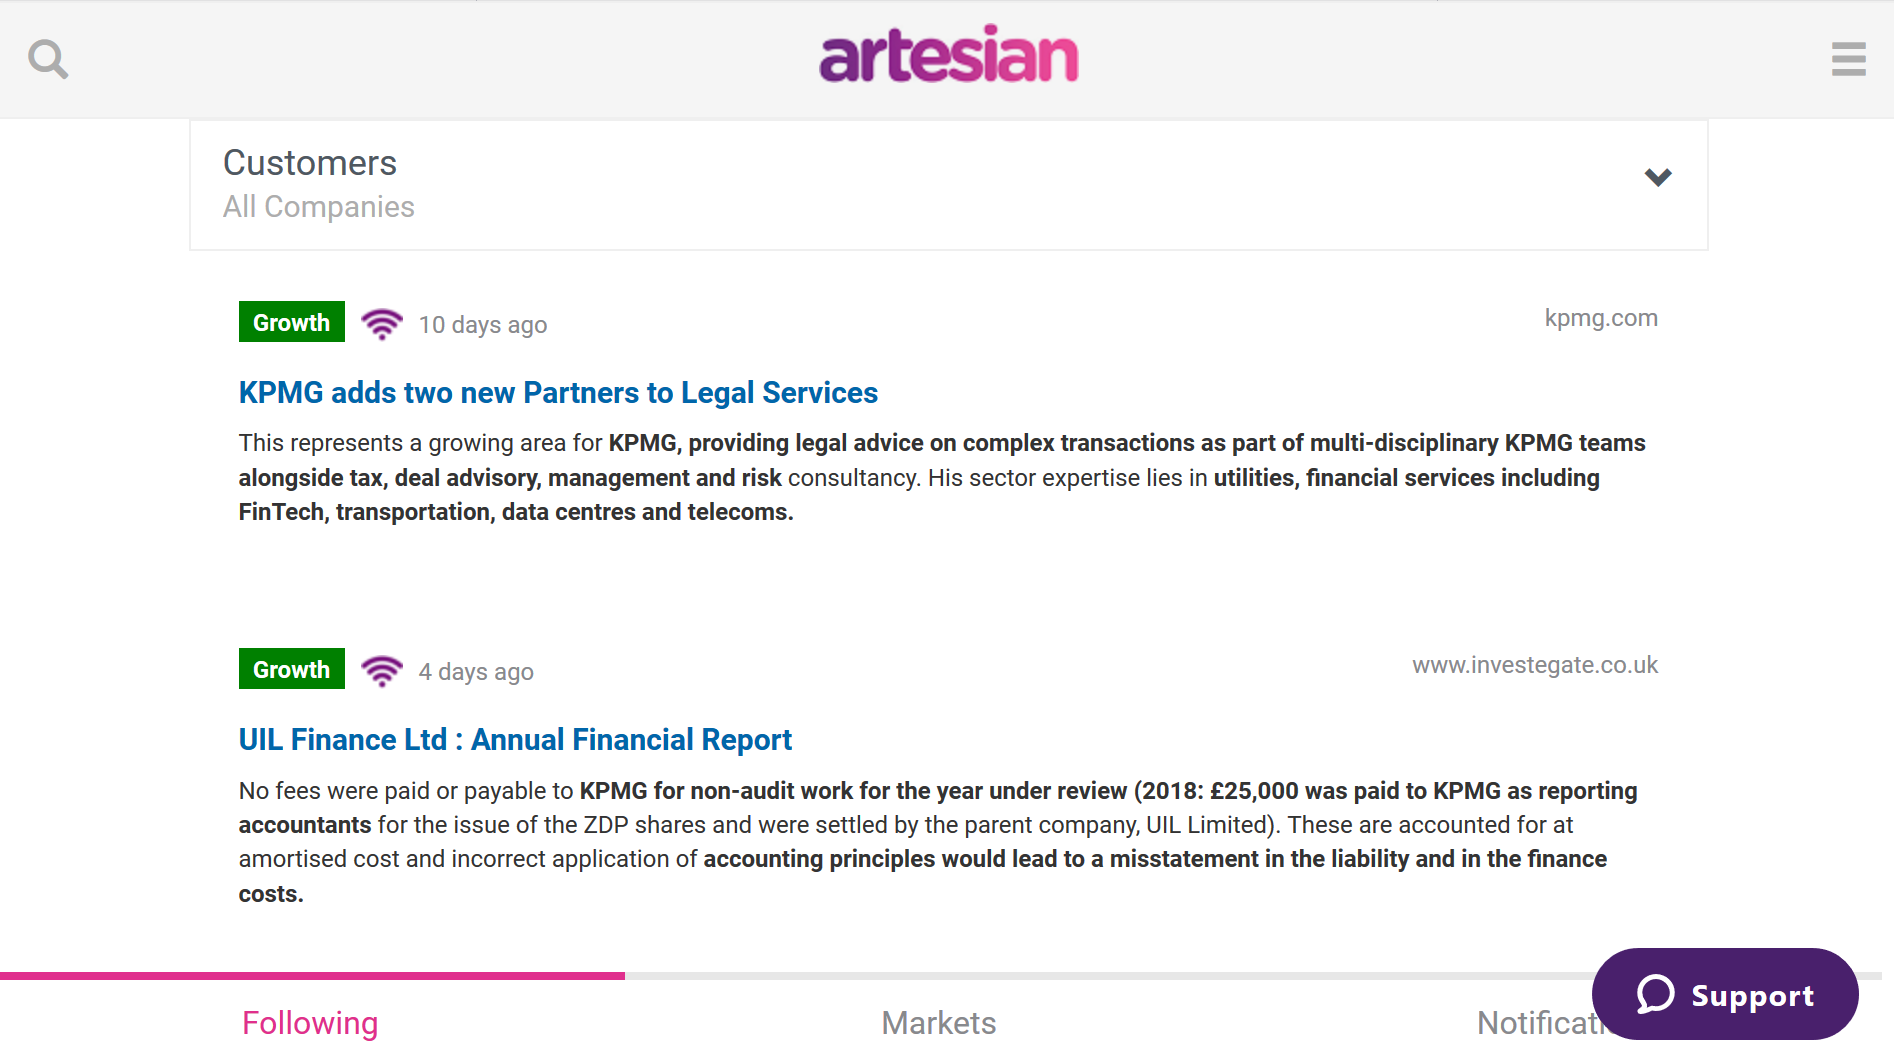 Artesian_for_Mobile_Devices_1.PNG